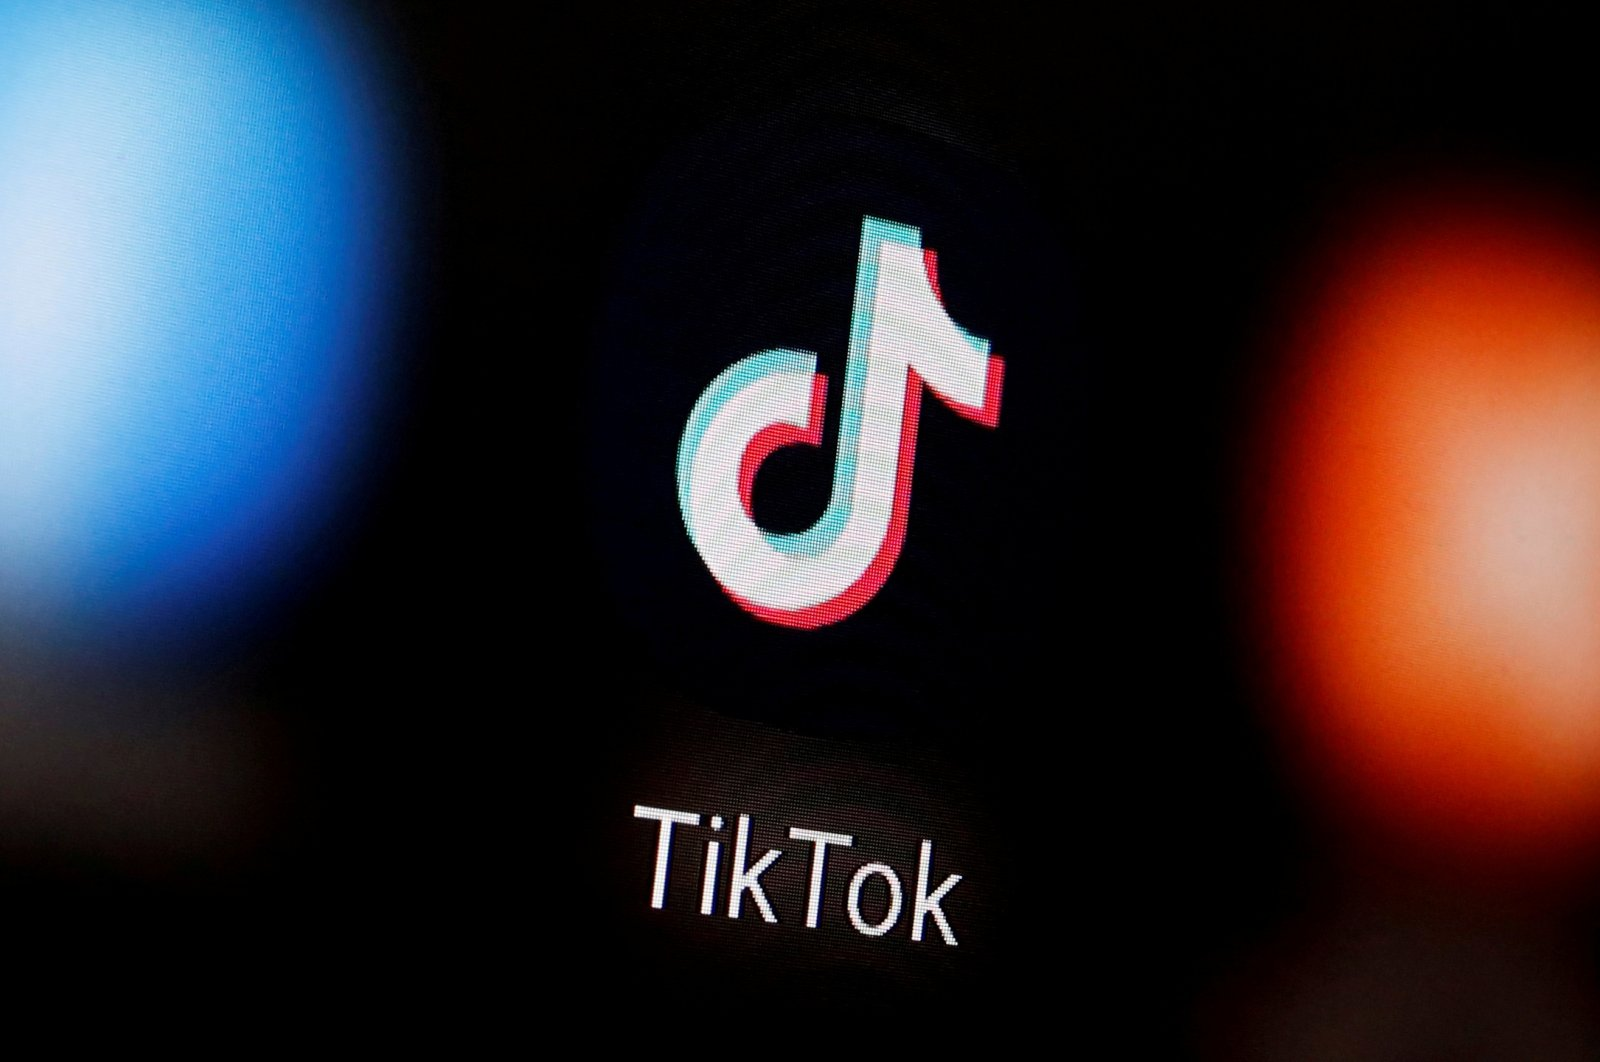 A TikTok logo is displayed on a smartphone in this illustration taken Jan. 6, 2020. (Reuters Photo)